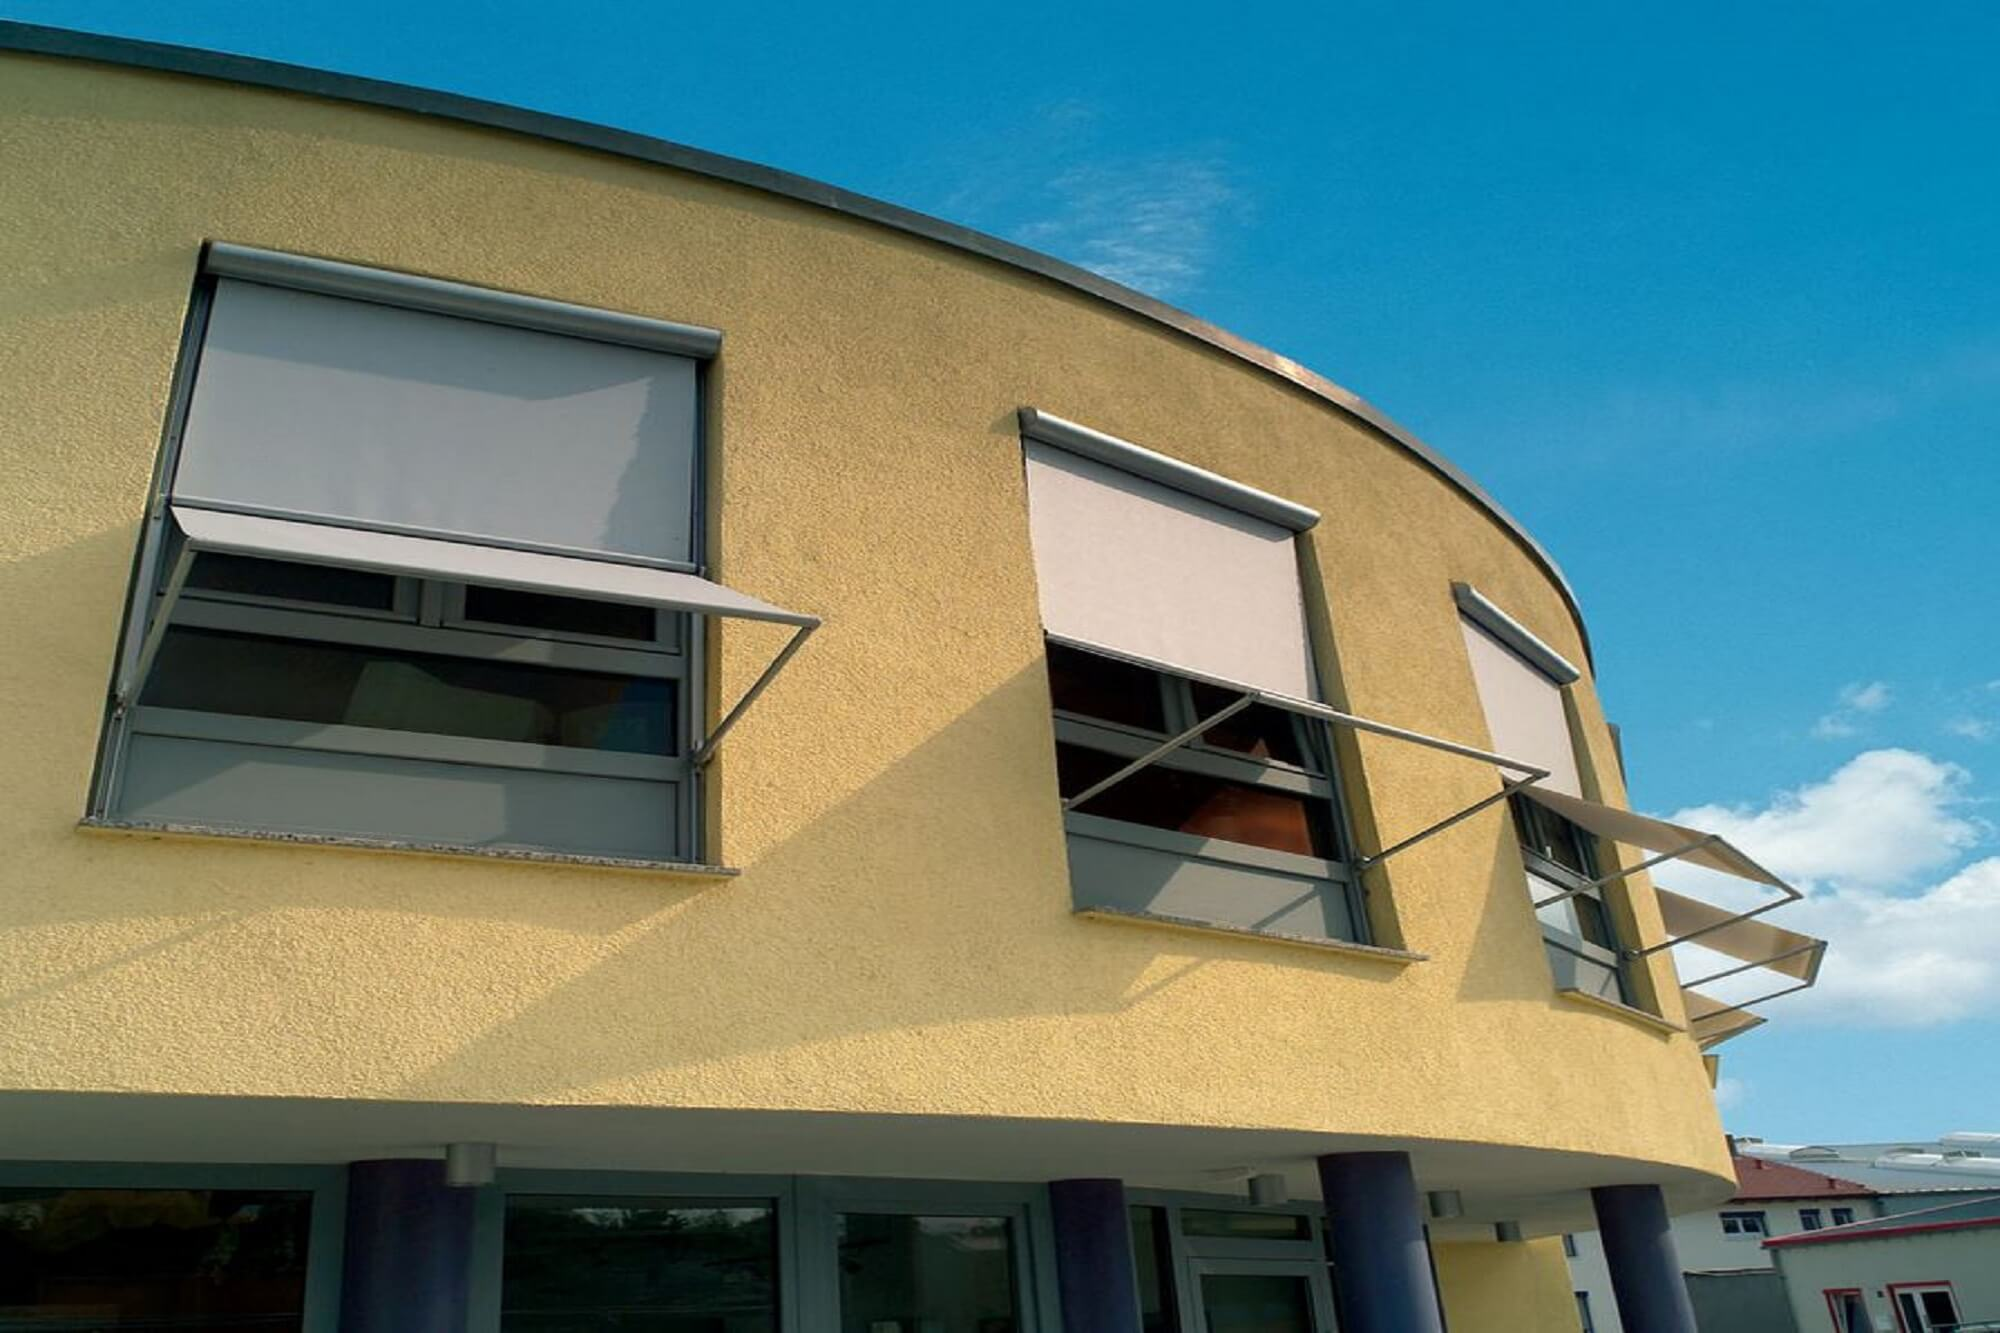 vertical-drop-angled-window-awning